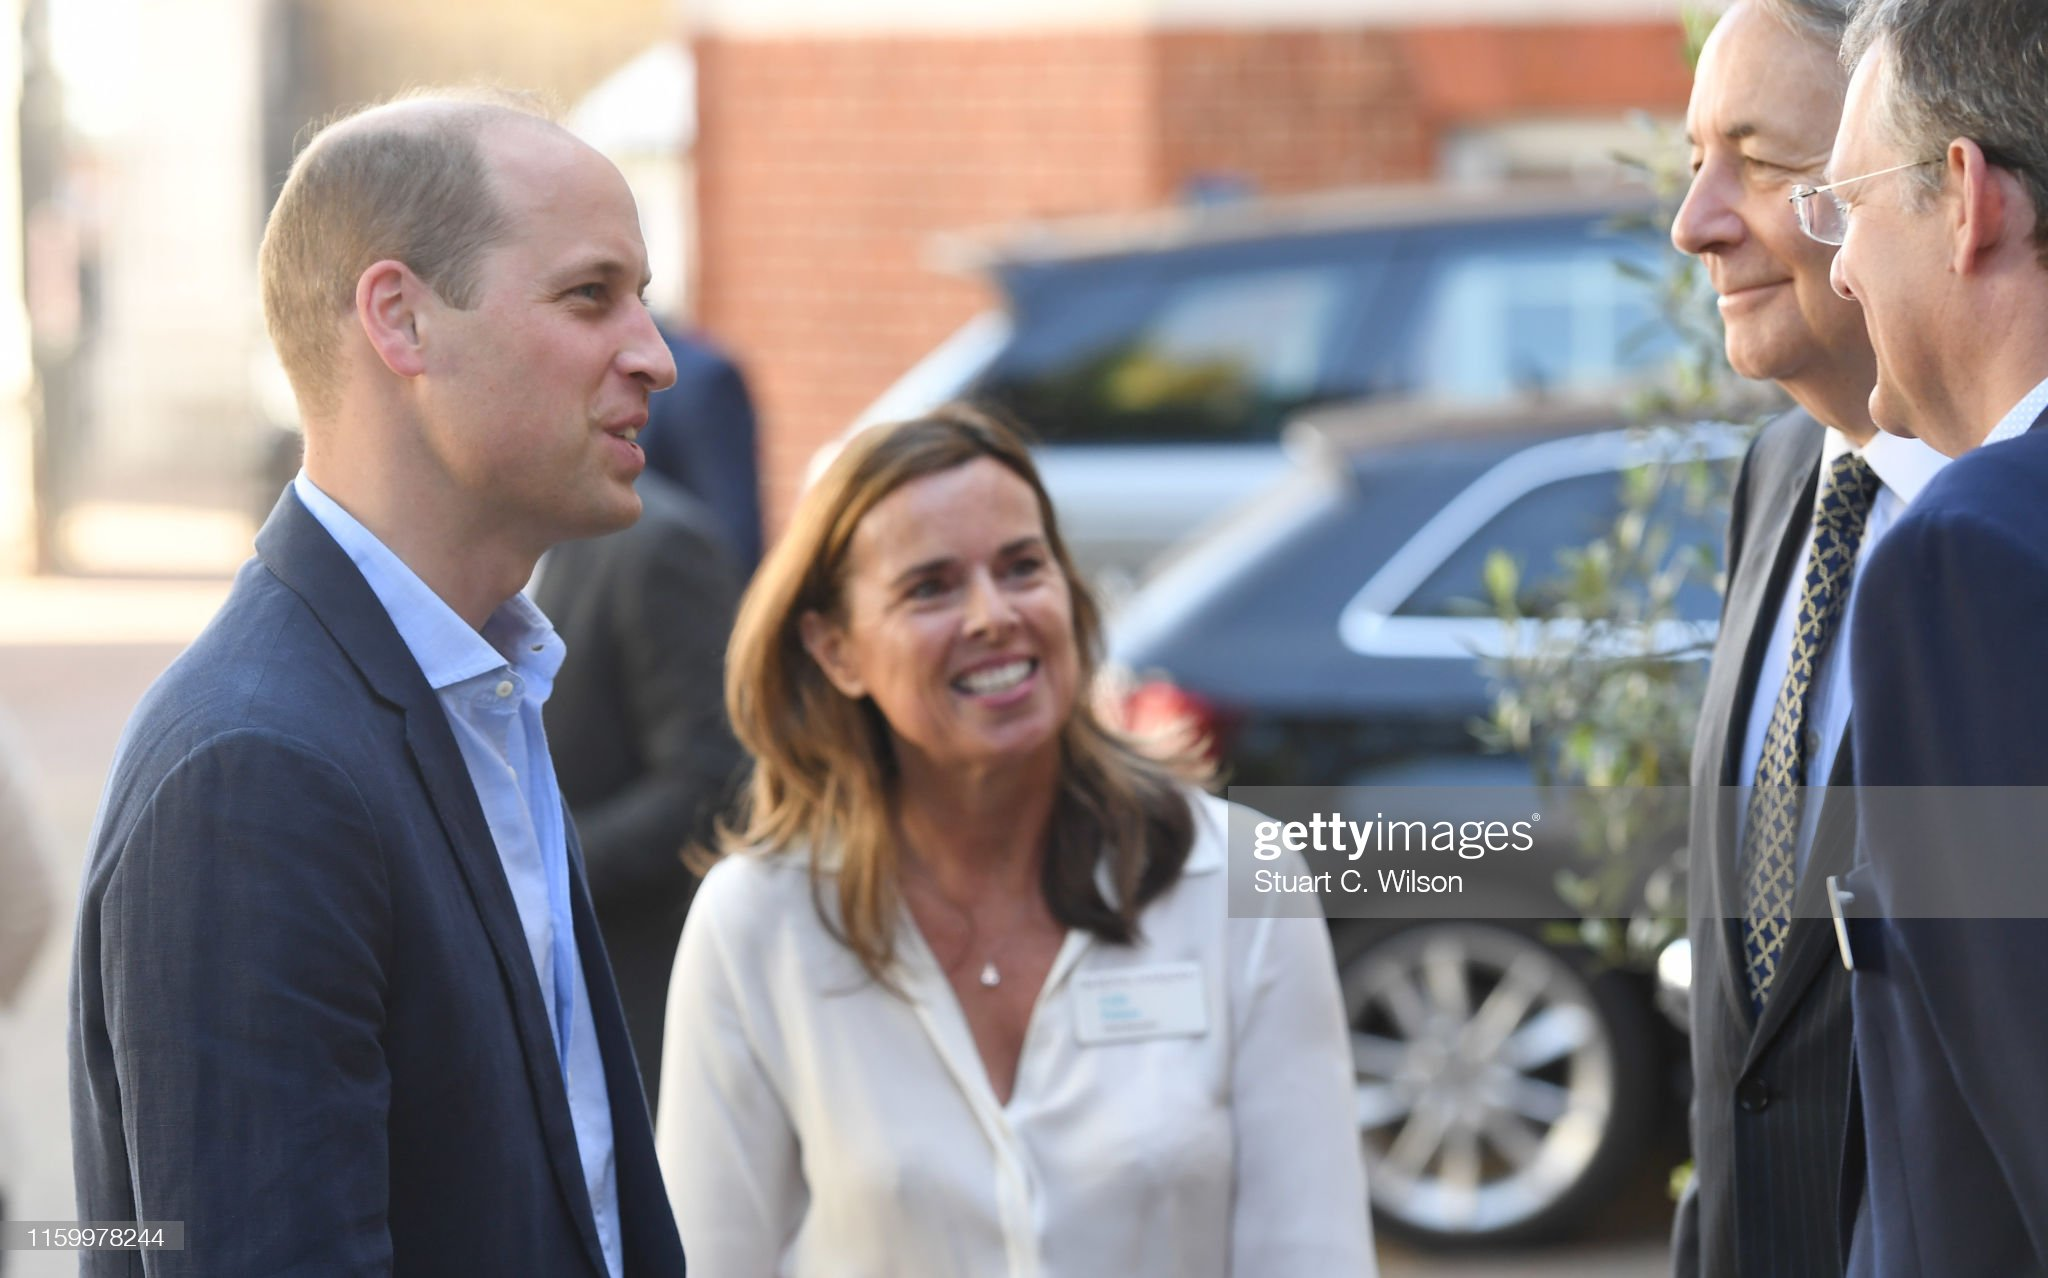 prince-william-duke-of-cambridge-visits-the-royal-marsden-on-july-04-picture-id1159978244